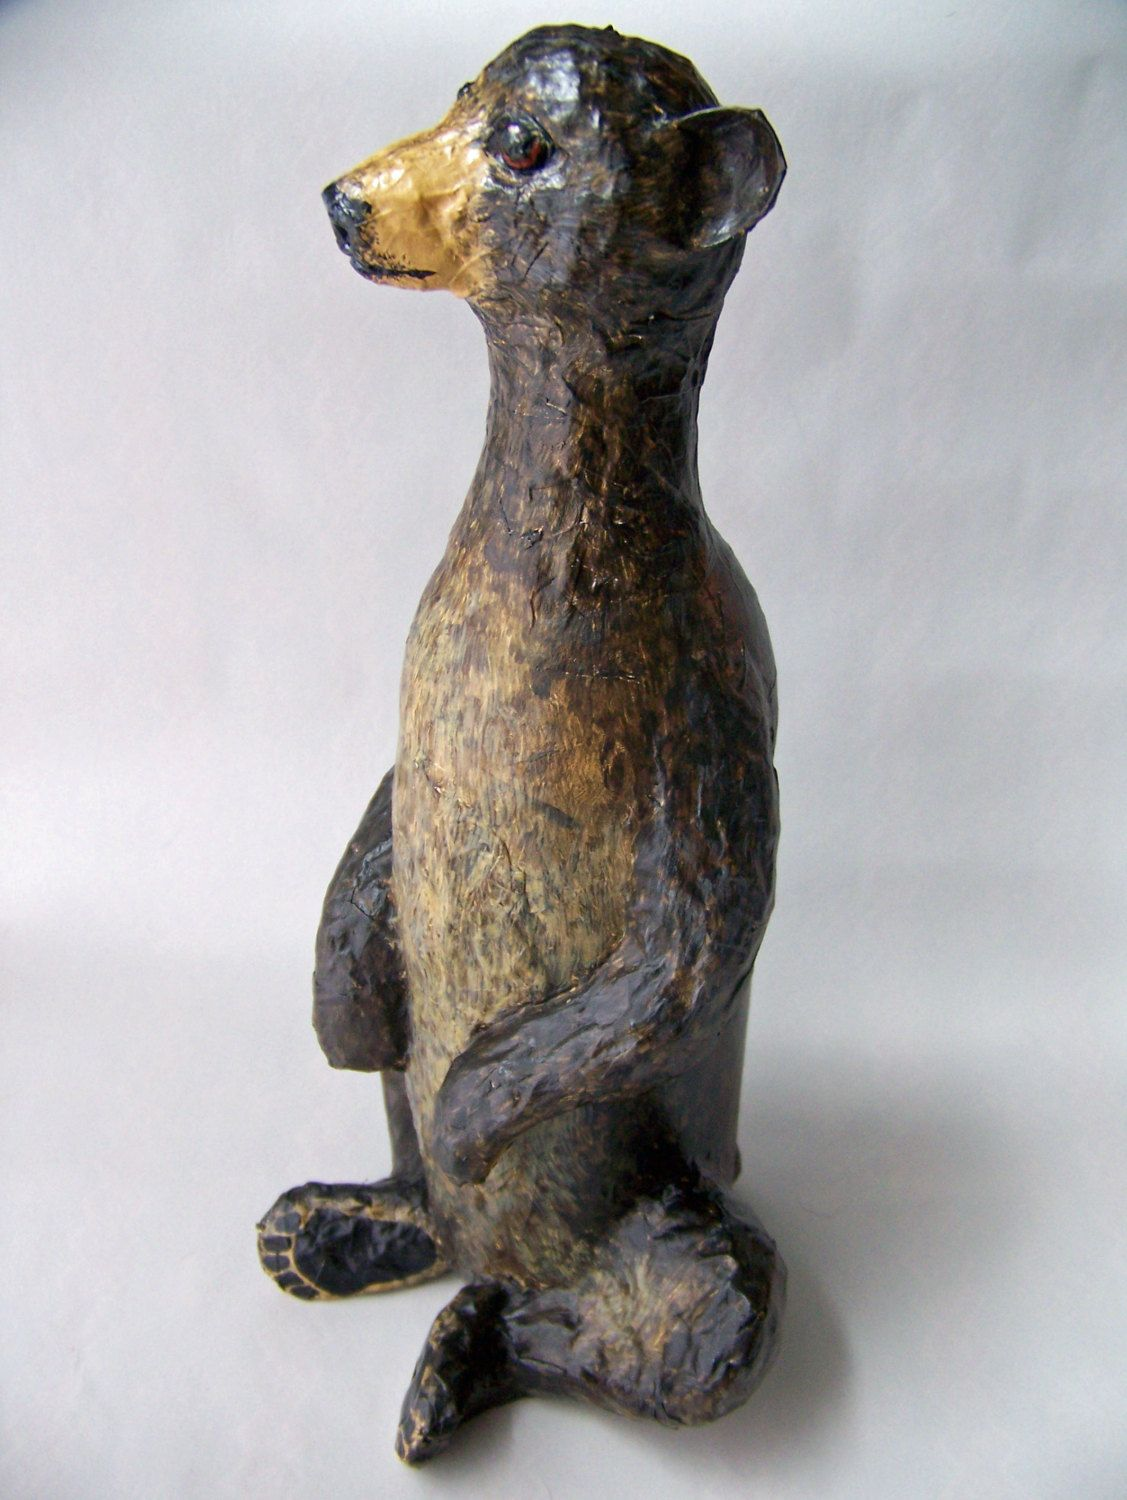 Bear sculpture made from paper mache and wine bottle